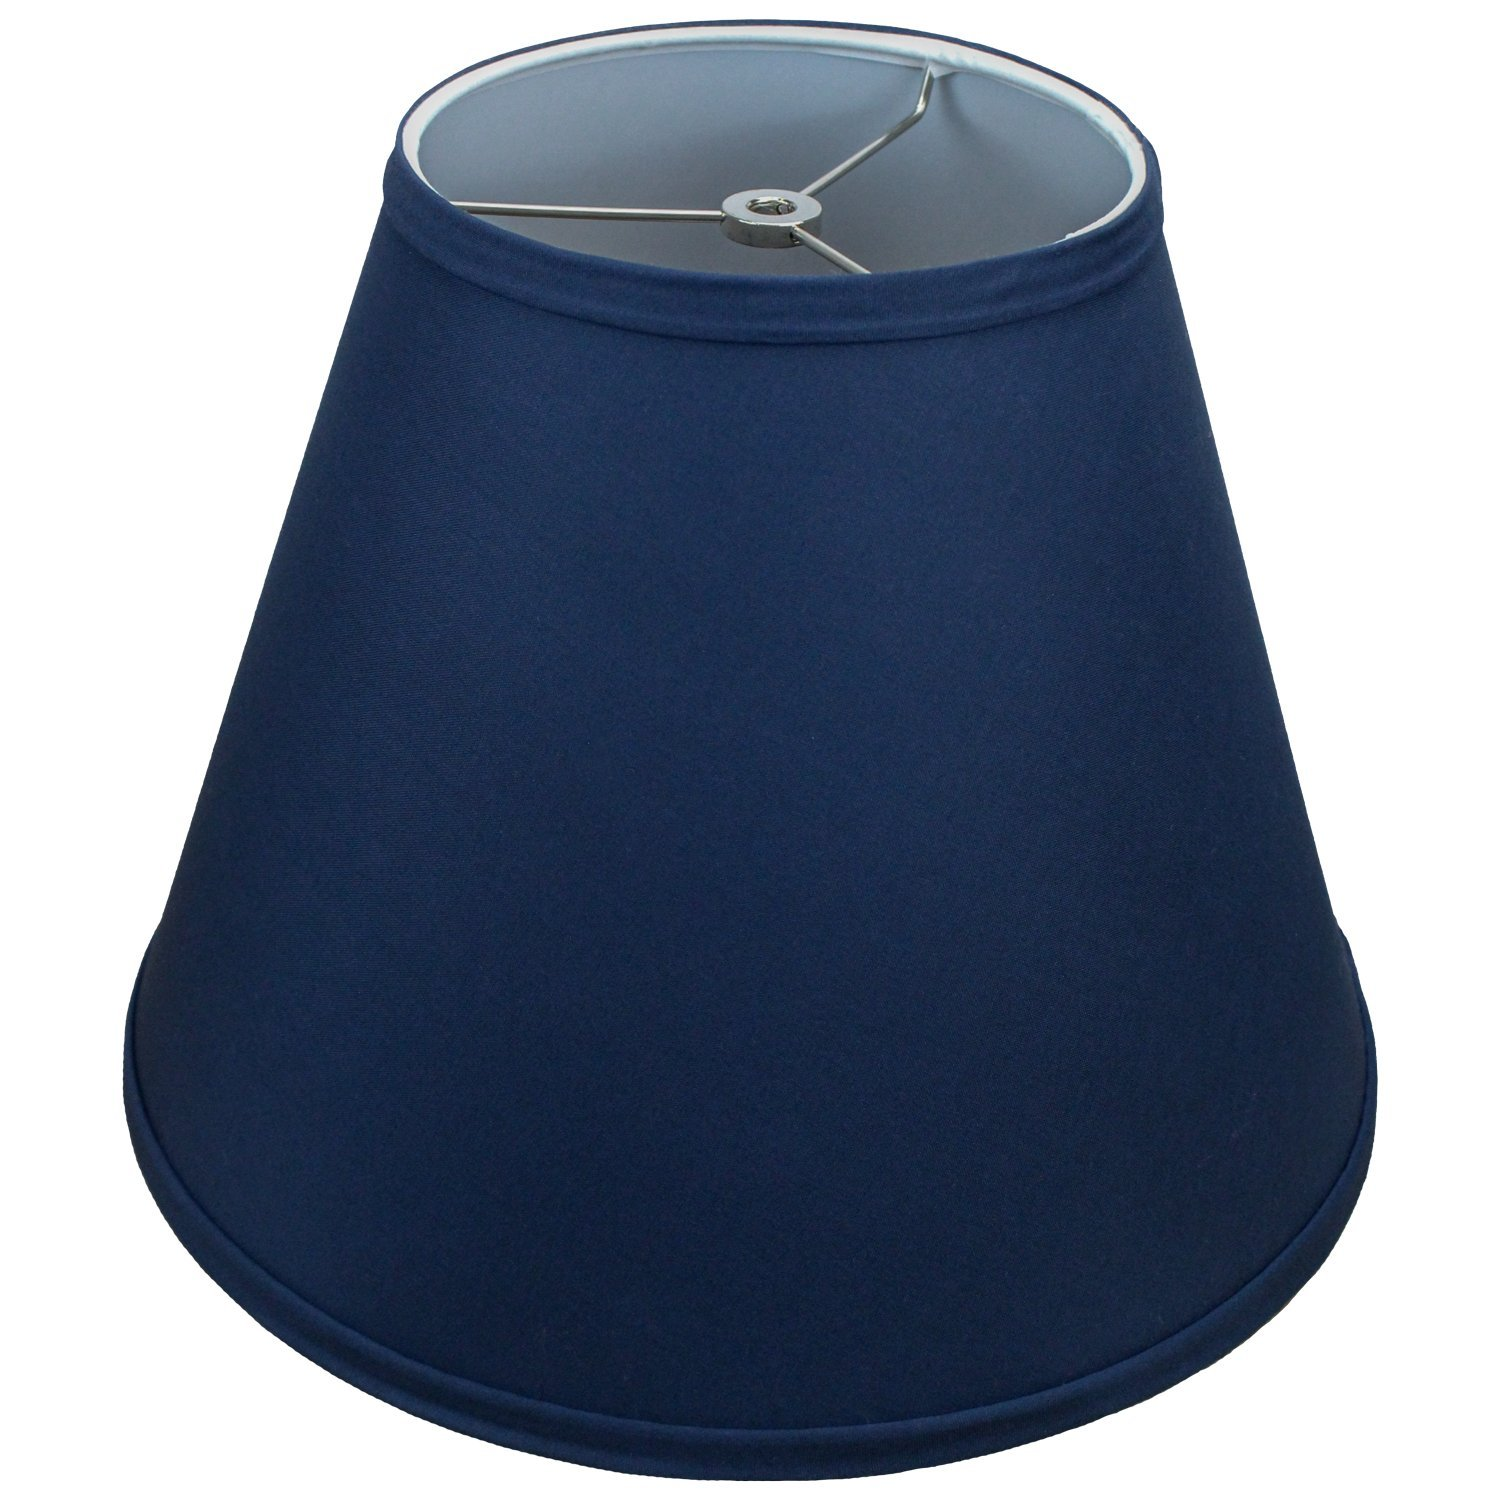 FenchelShades.com Lampshade 7'' Top Diameter x 14'' Bottom Diameter x 11'' Slant Height with Washer (Spider) Attachment for Lamps with a Harp (Navy Blue) by FenchelShades.com